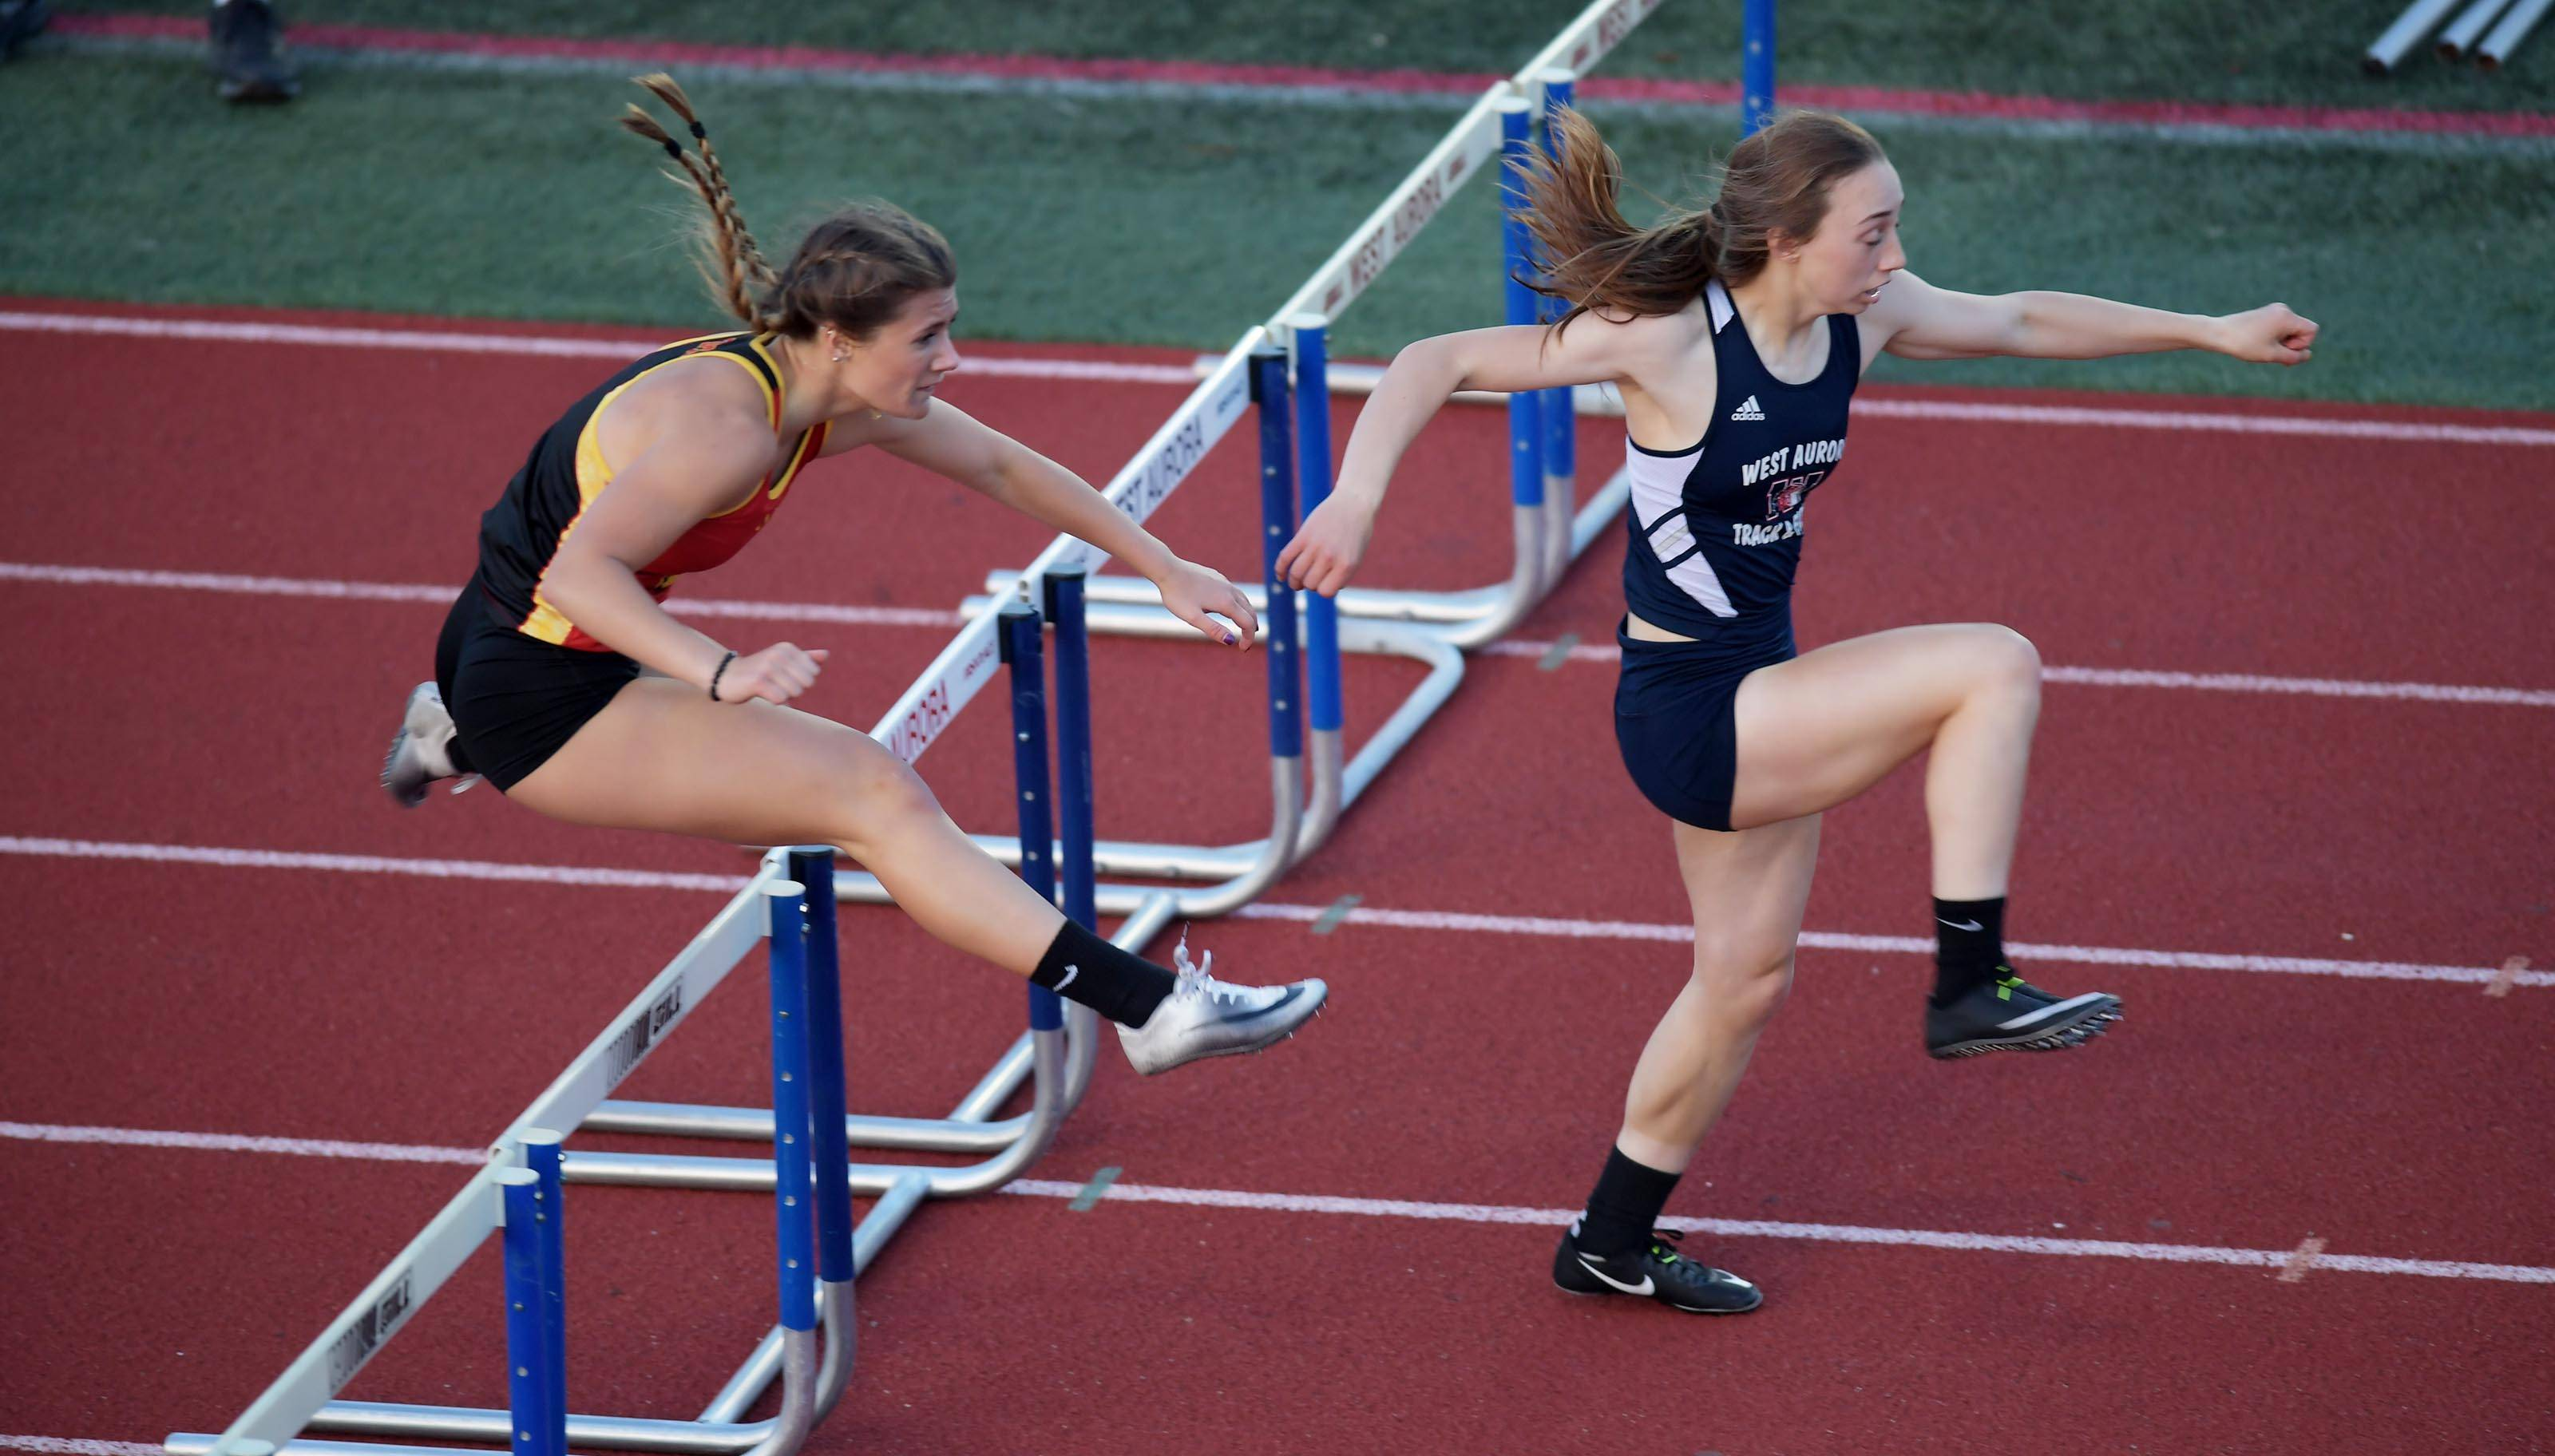 West Aurora's Victoria Spagnola leads Batavia's Sabrina Schlenker in the 300 meter hurdles at the West Aurora girls sectional track meet last Thursday.